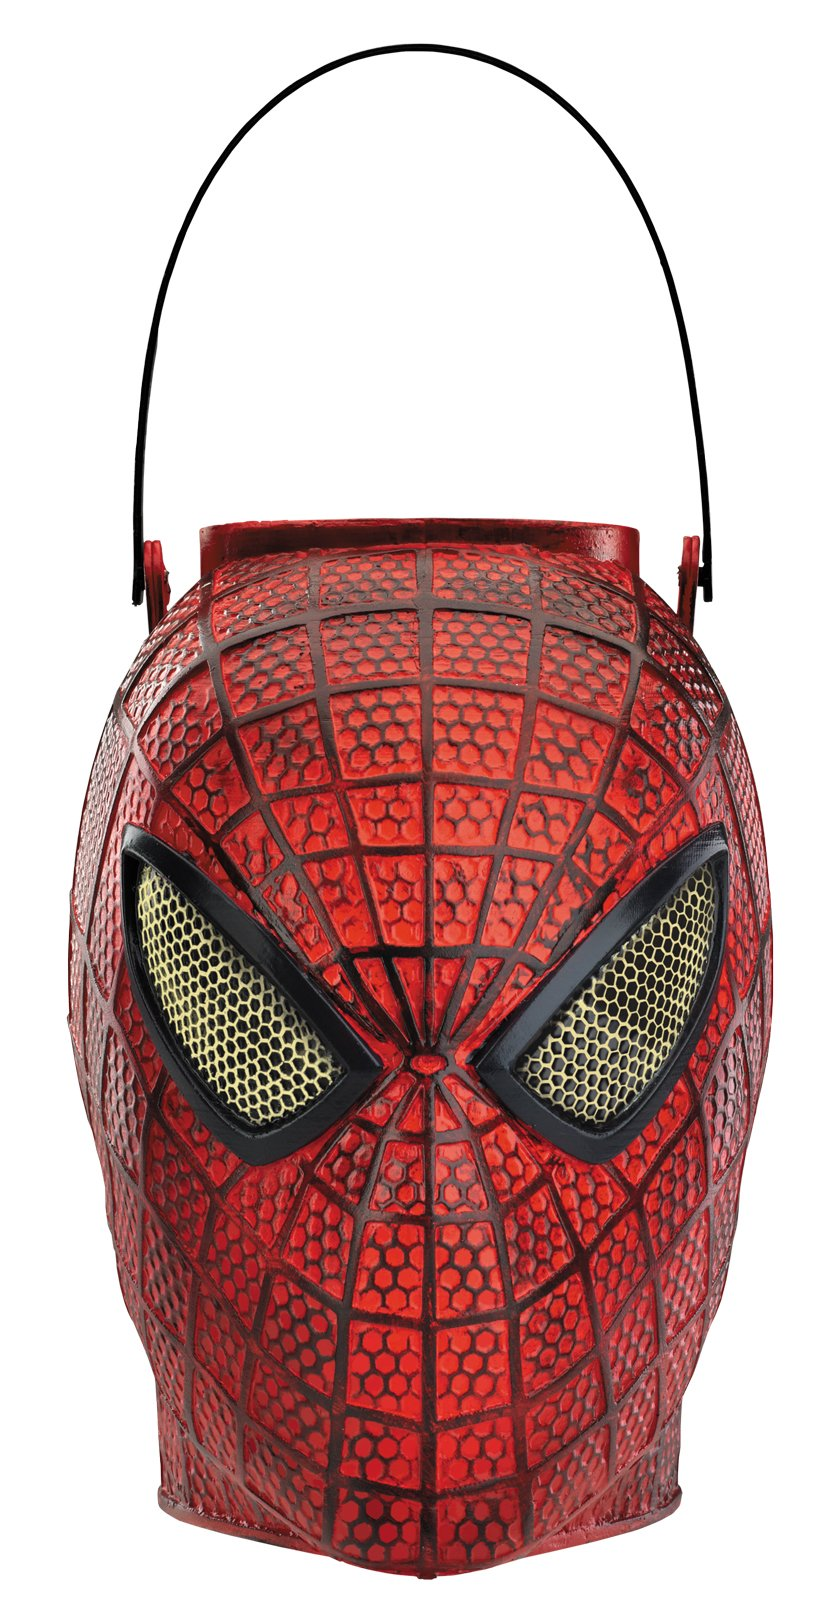 The Amazing Spider-Man Folding Treat Pail